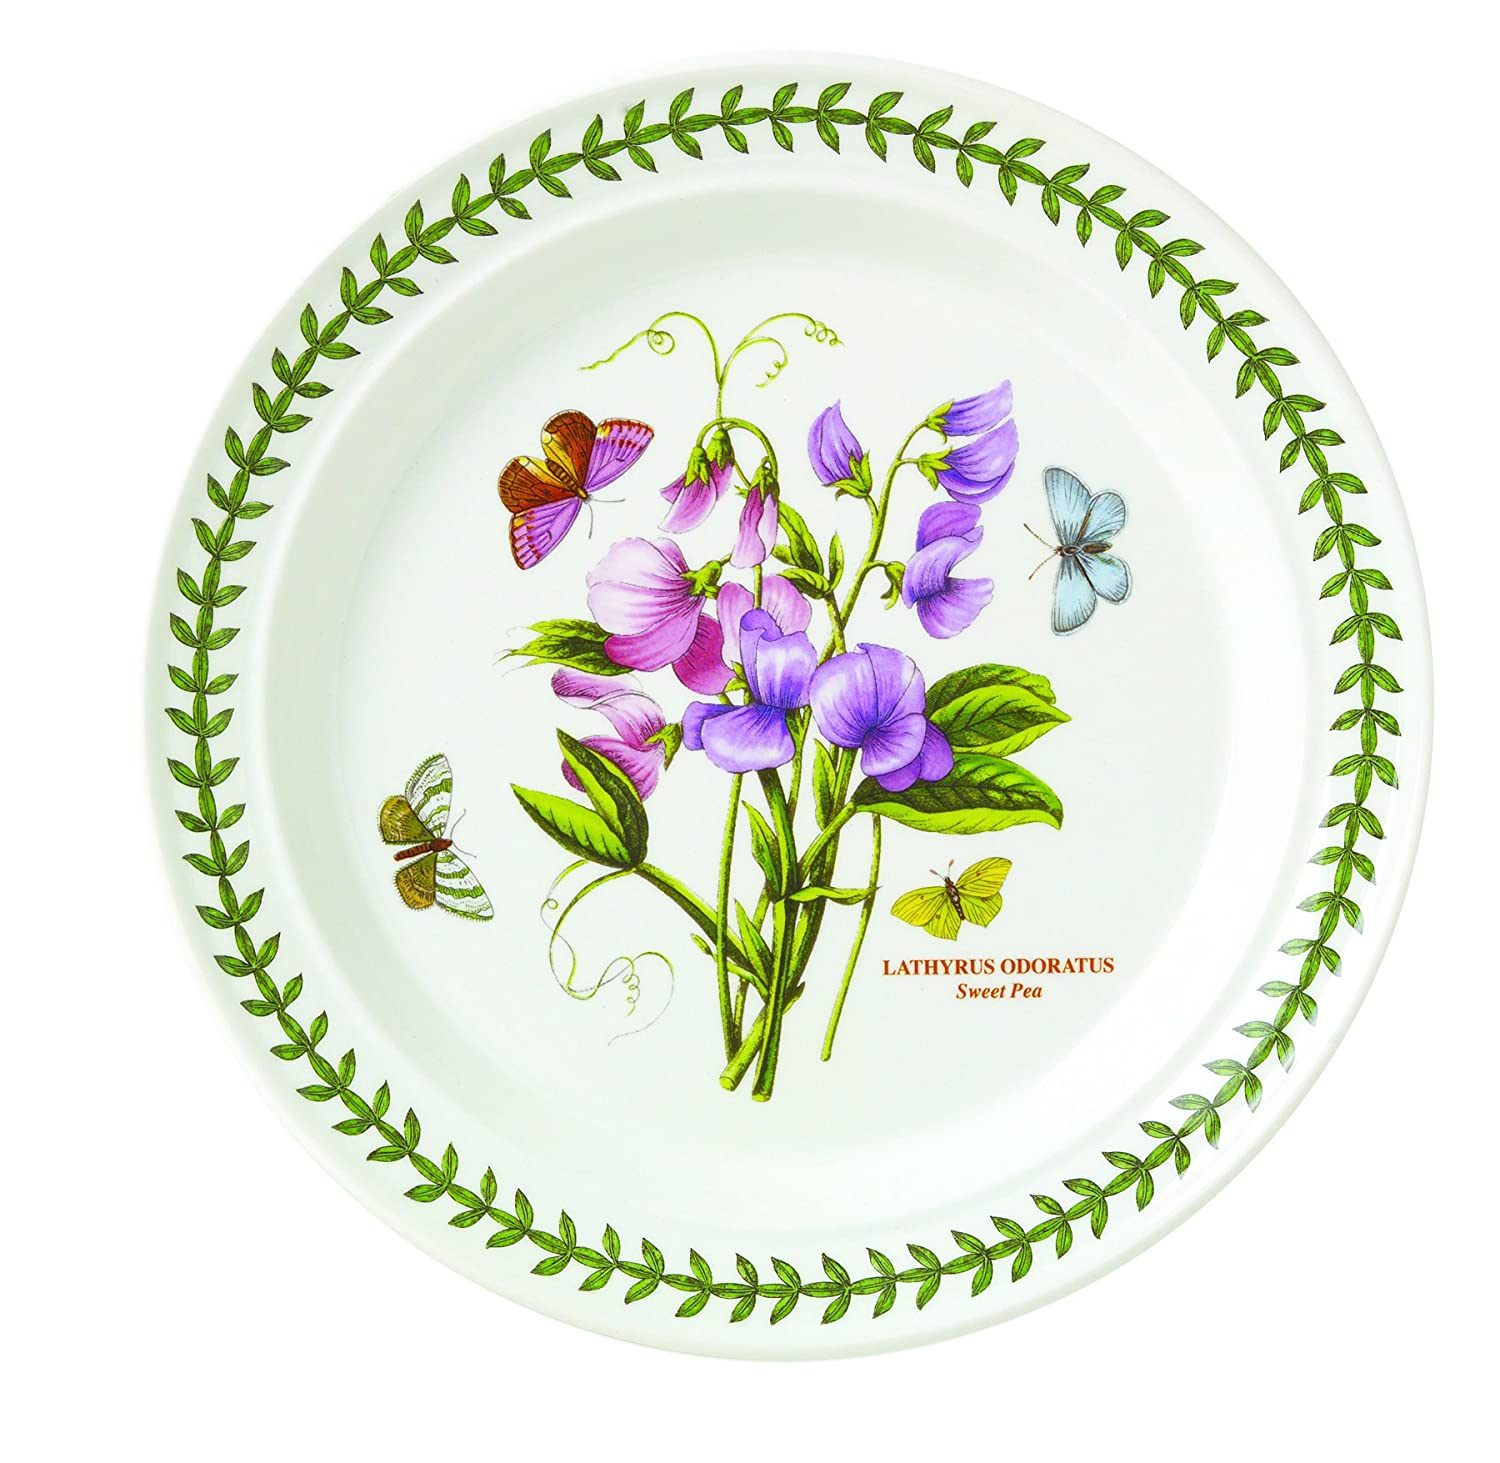 Amazon.com | Portmeirion Botanic Garden Dinner Plates Set of 6 Assorted Motifs Dinner Plates  sc 1 st  Amazon.com : portmeirion christmas story dinnerware - pezcame.com